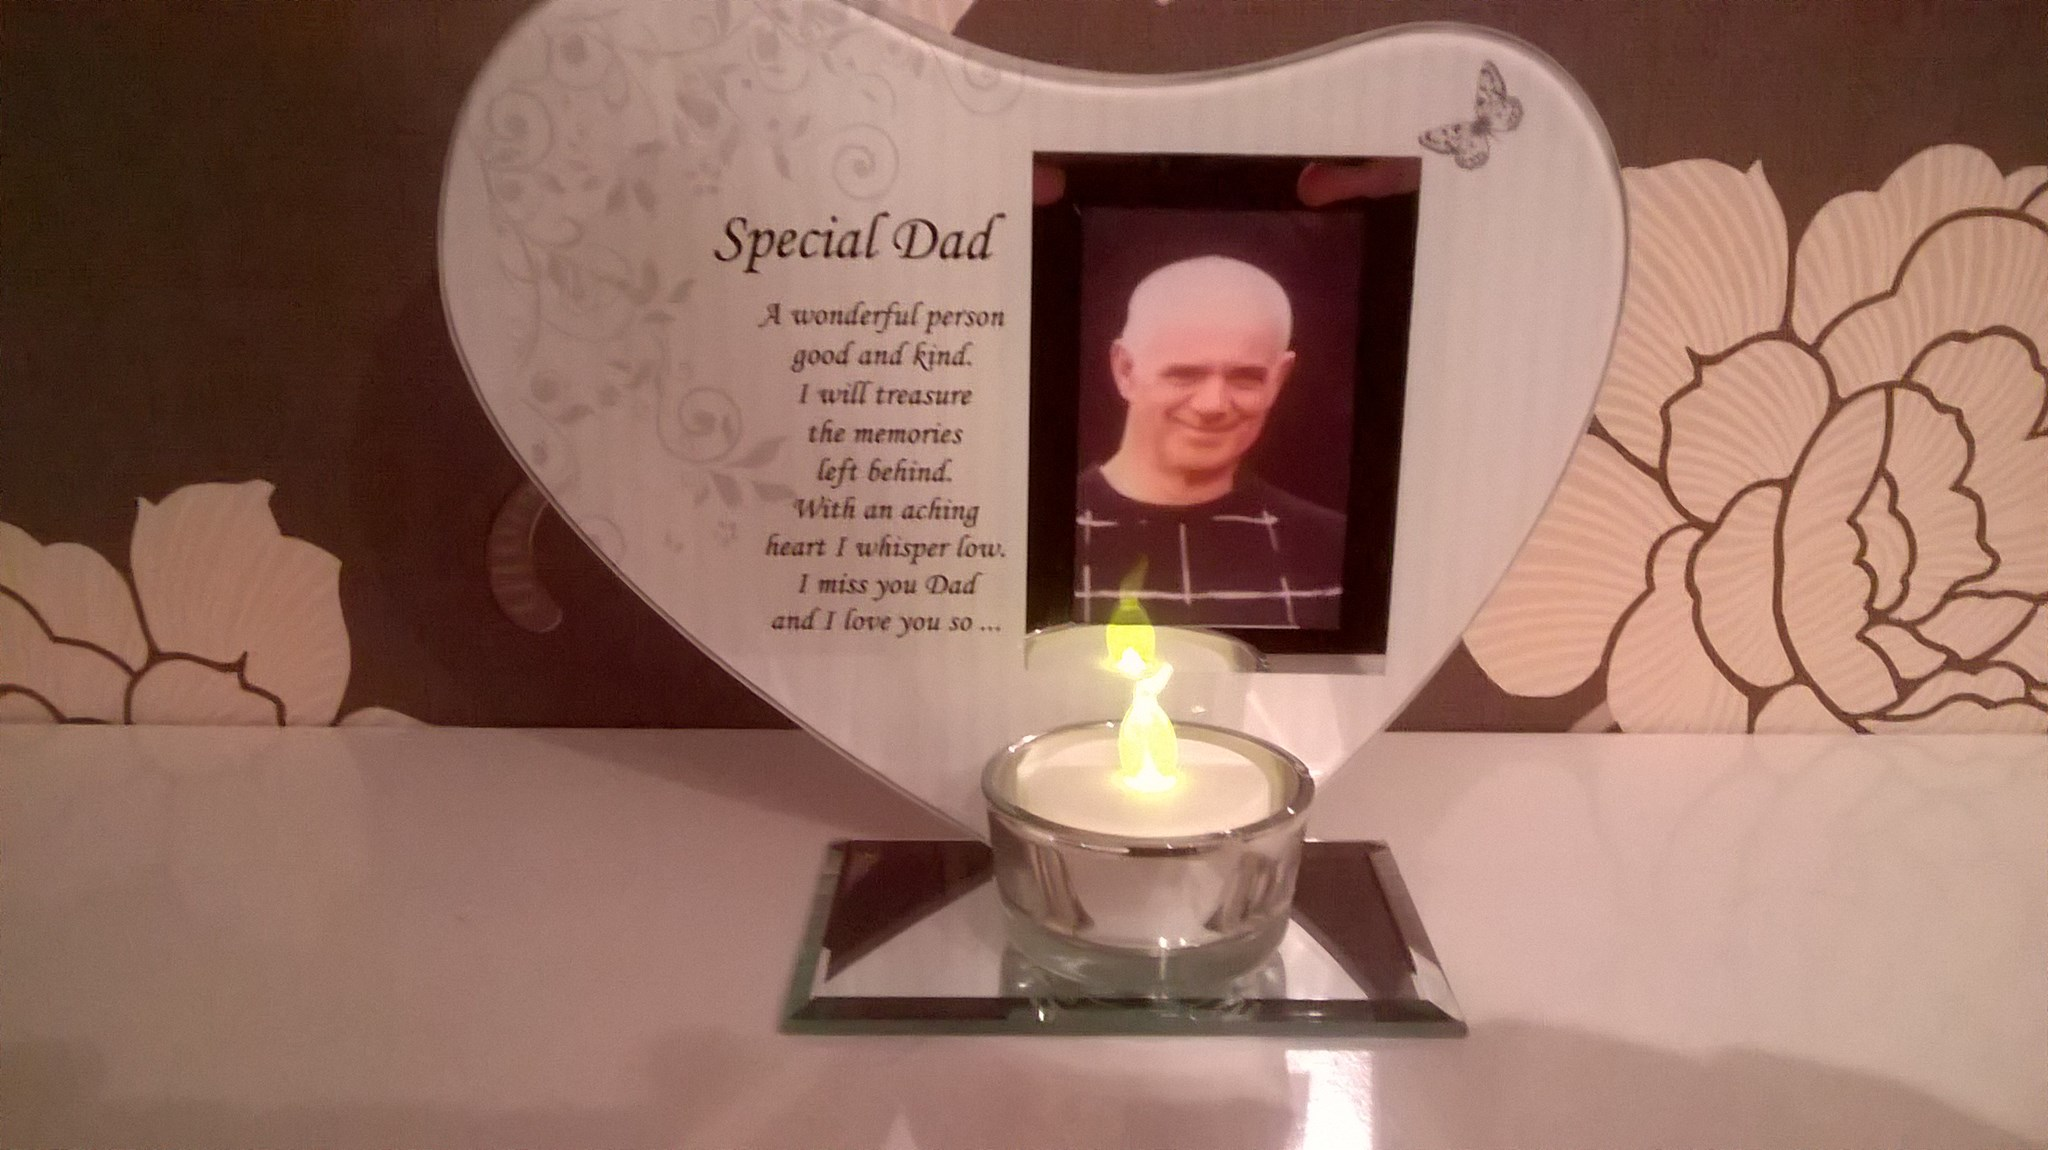 special dad in memory frame, candle and poem x